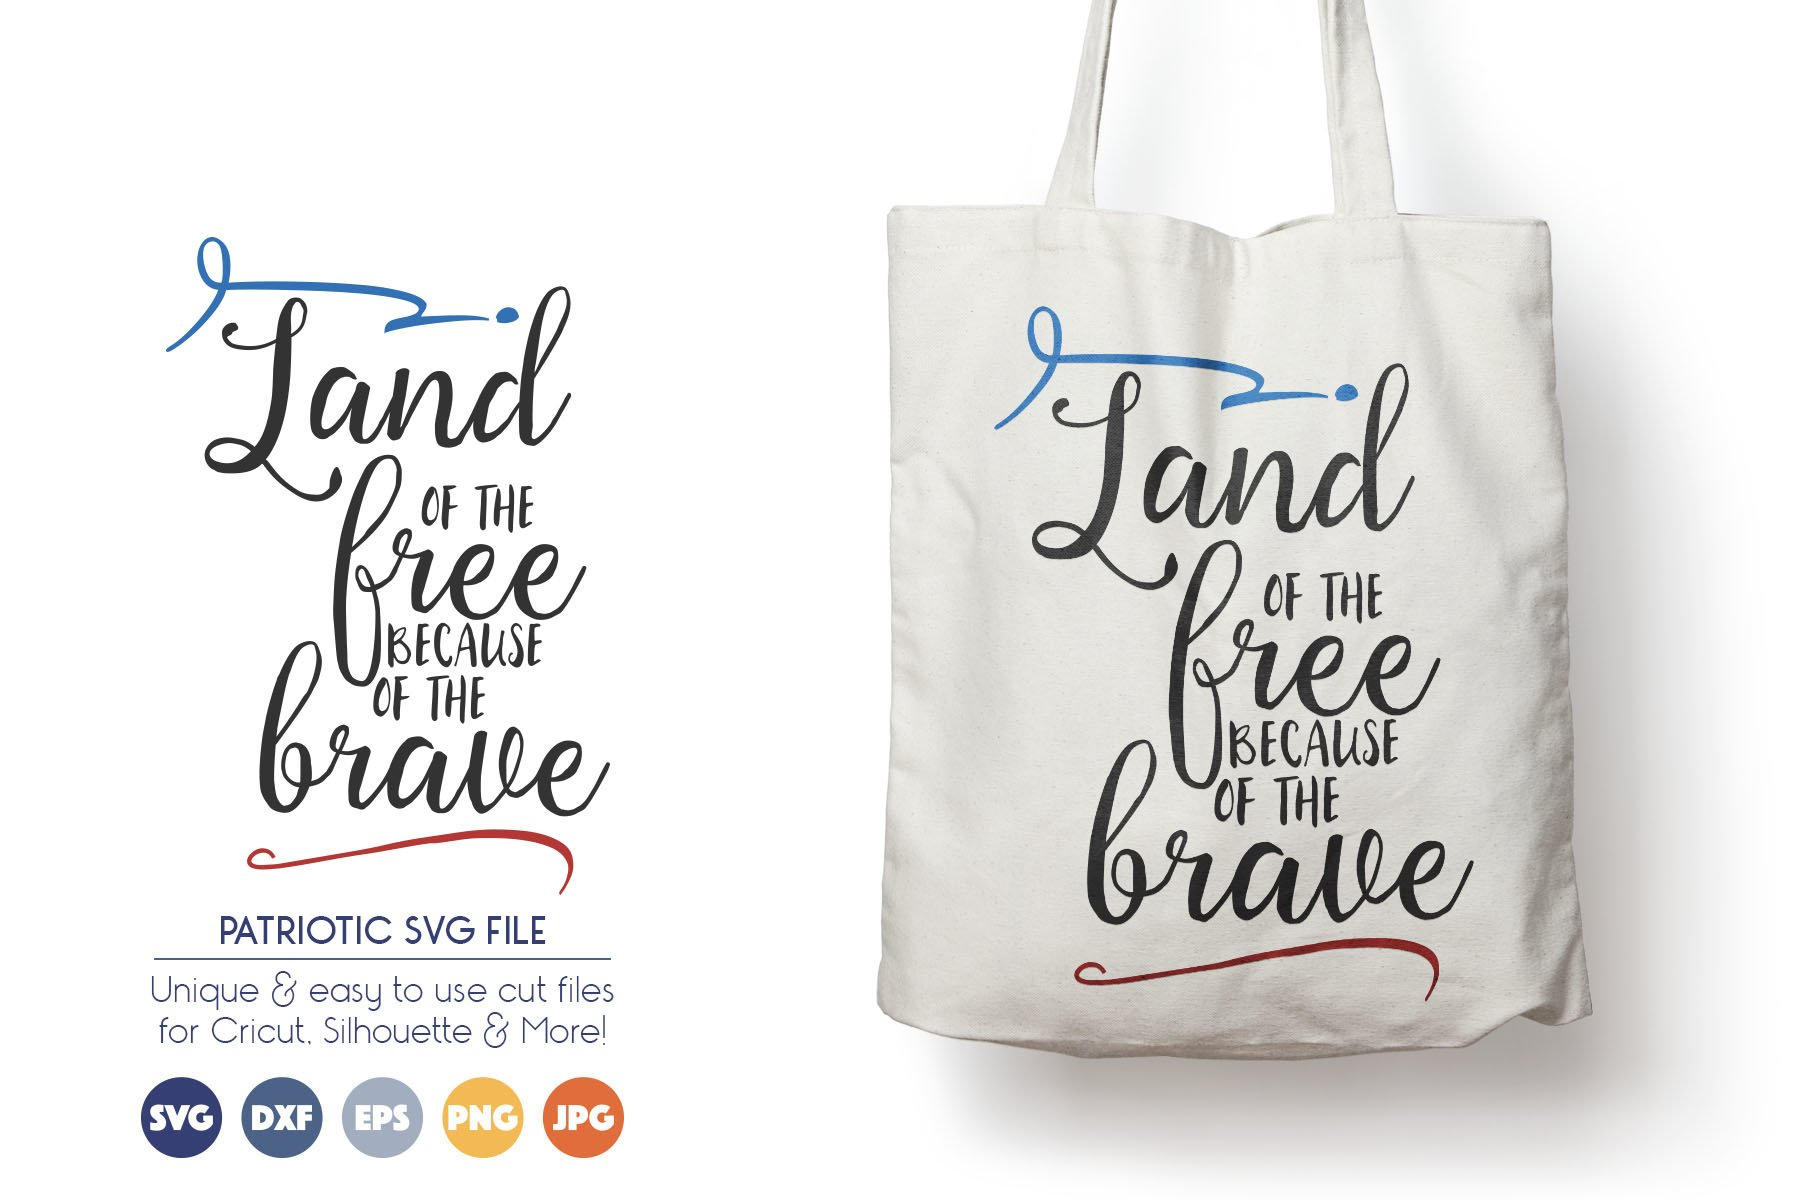 Patriotic SVG Cut Files - Land of Free Because of the Brave example image 1